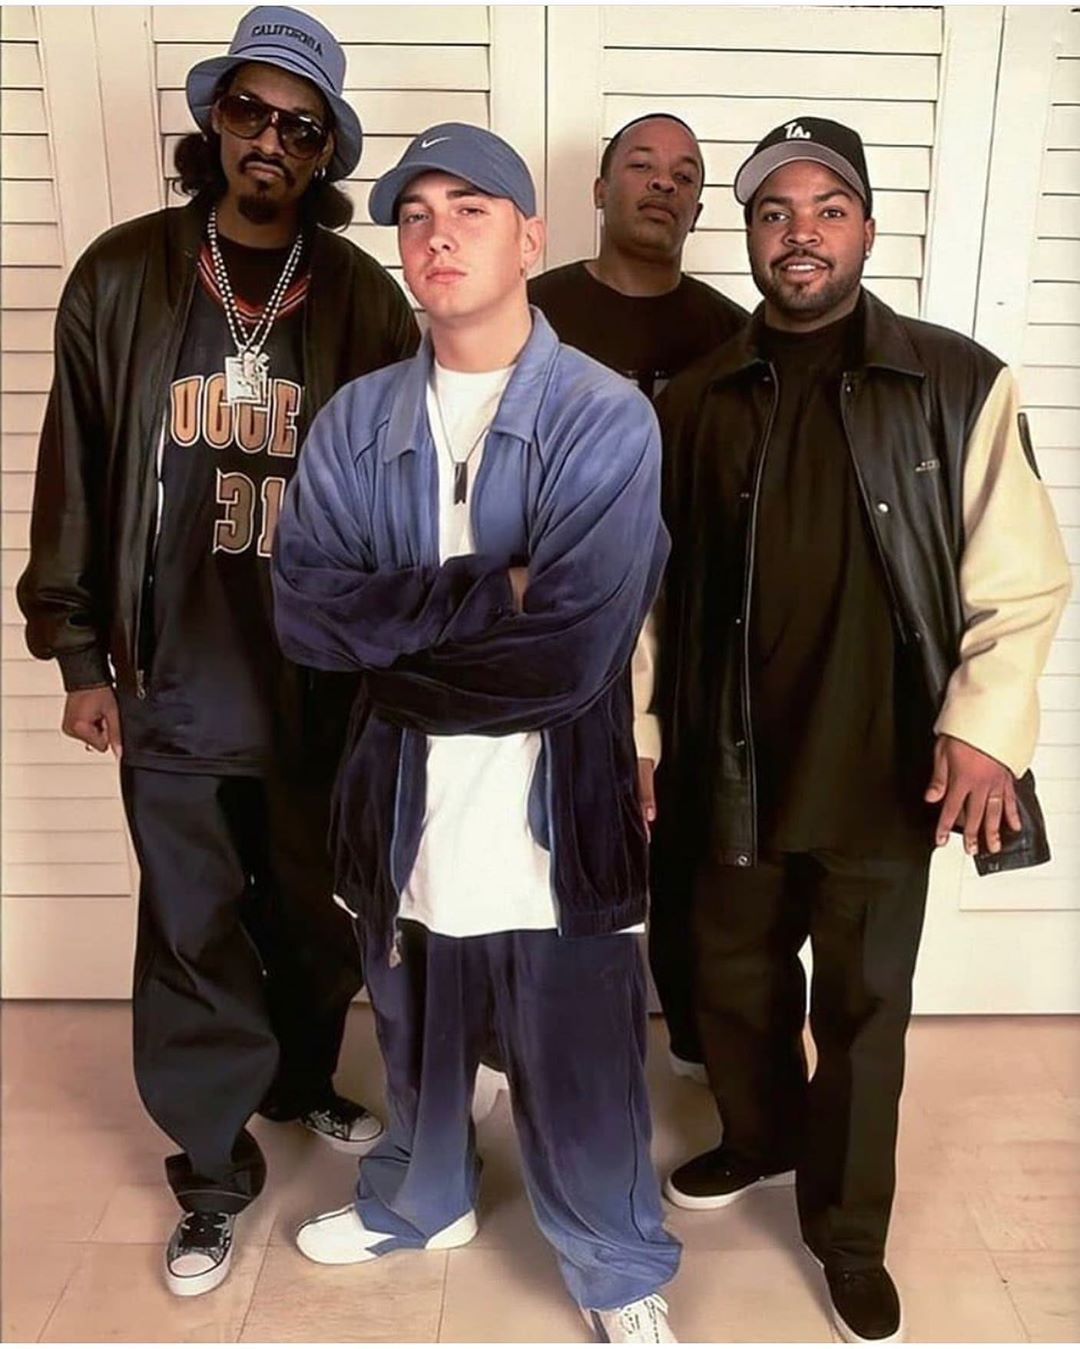 Snoop Dogg, Eminem, Ice Cube and Dr.Dre